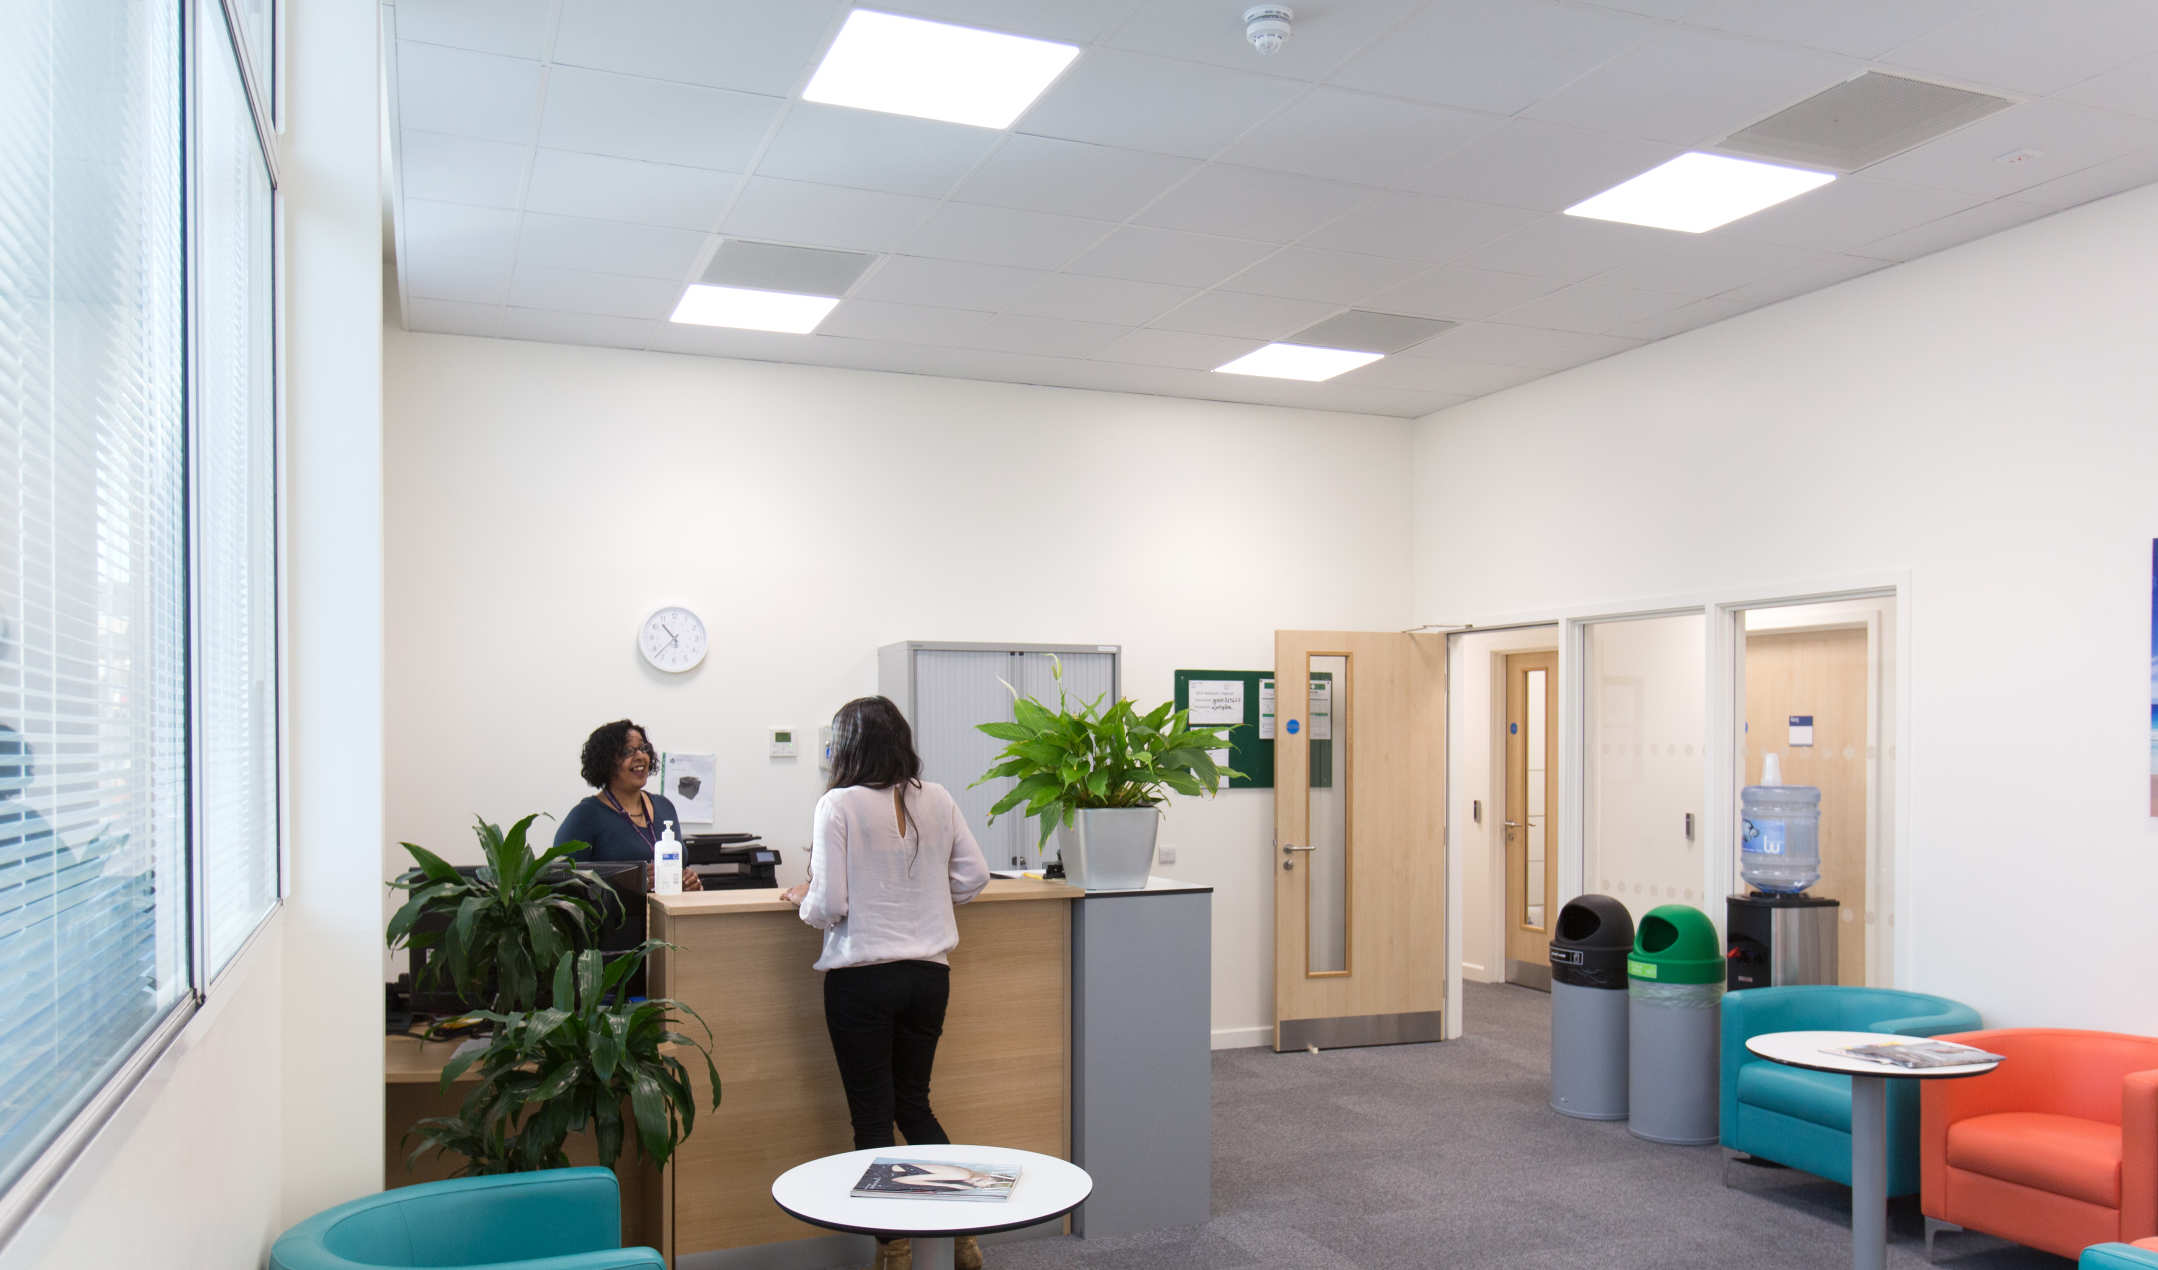 Reception area at the Imperial NEA Research Hub at Stadium House